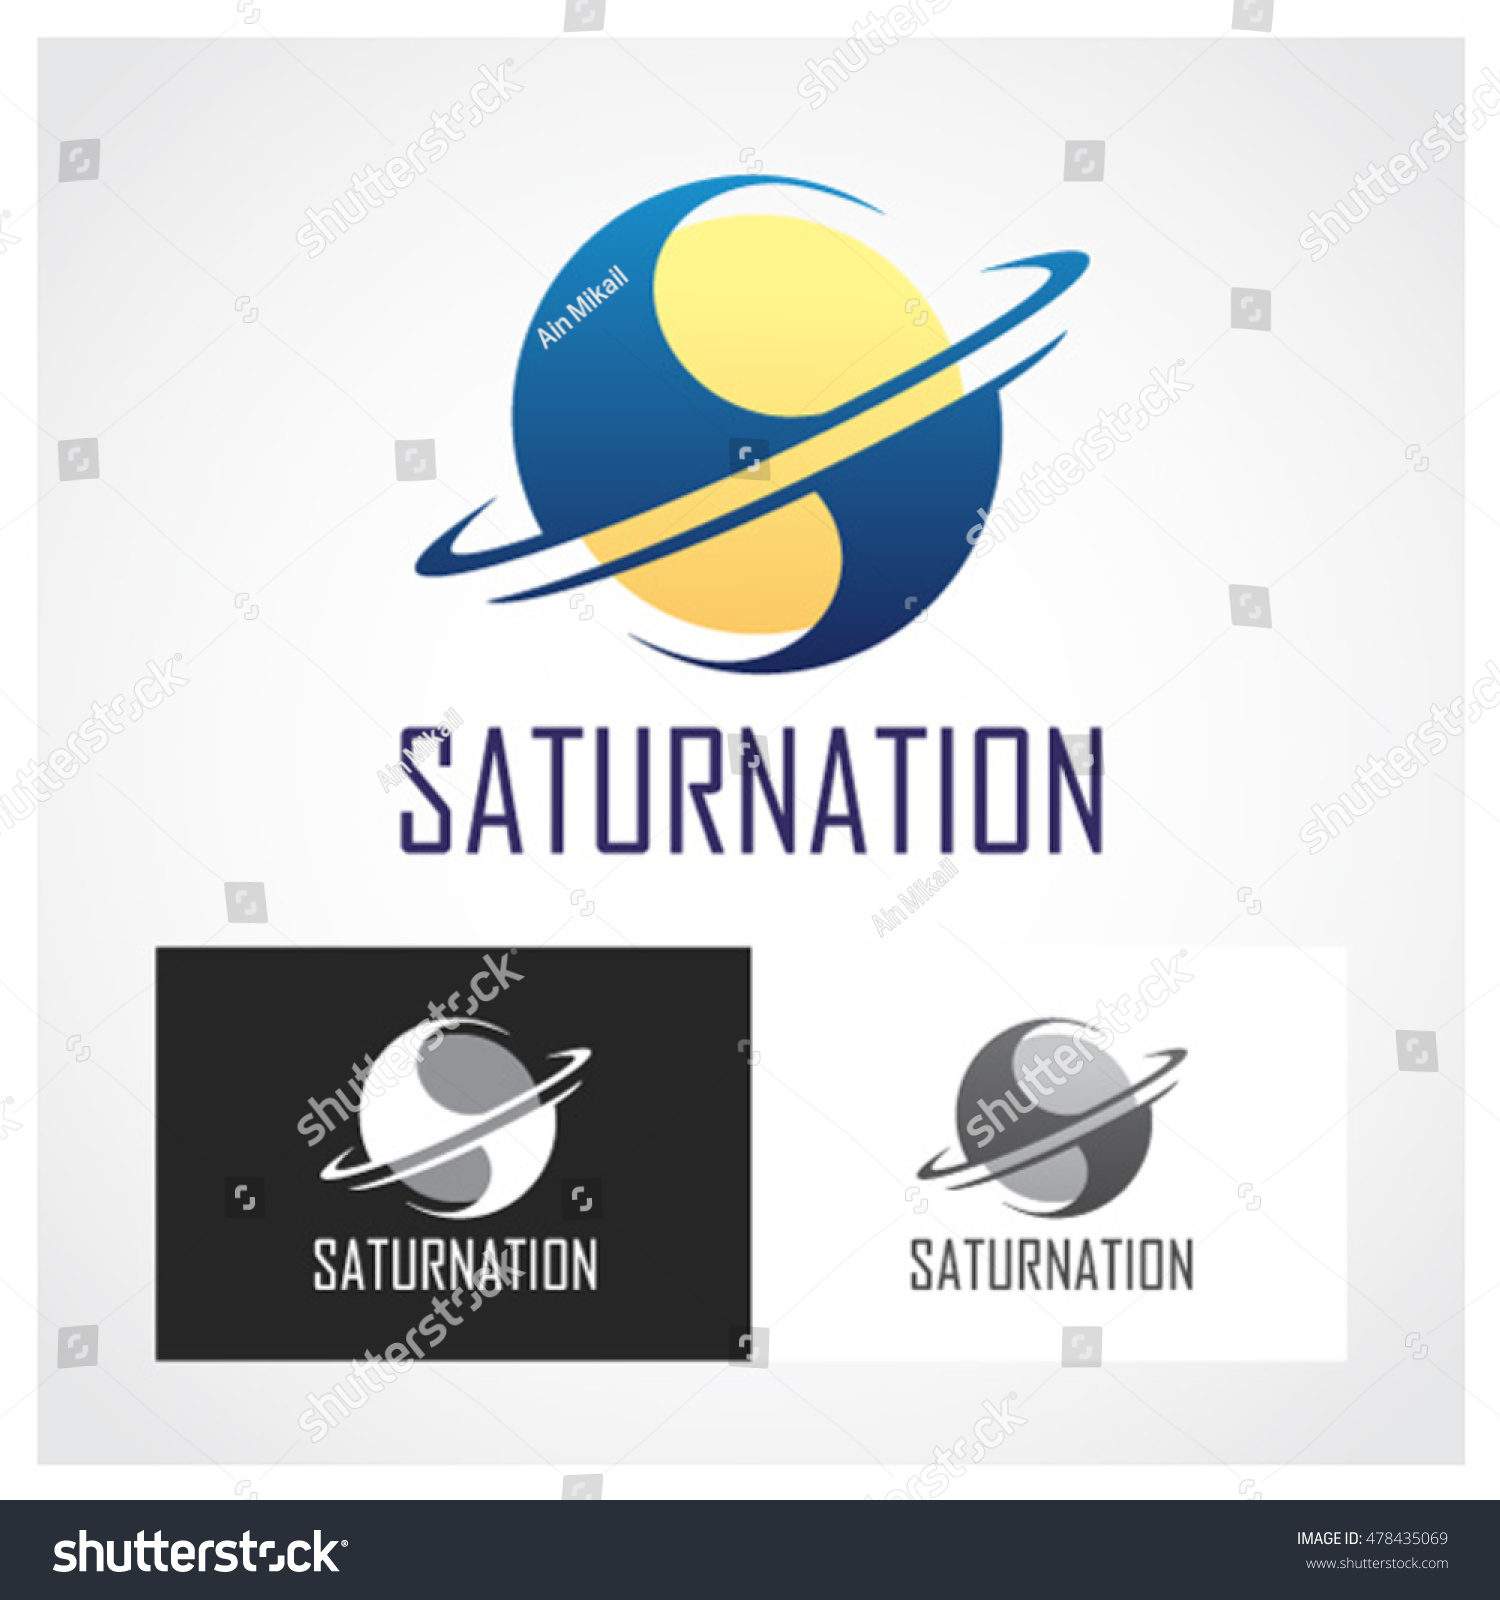 Saturn symbol suitable professional design use stock vector saturn symbol suitable for professional design use buycottarizona Image collections